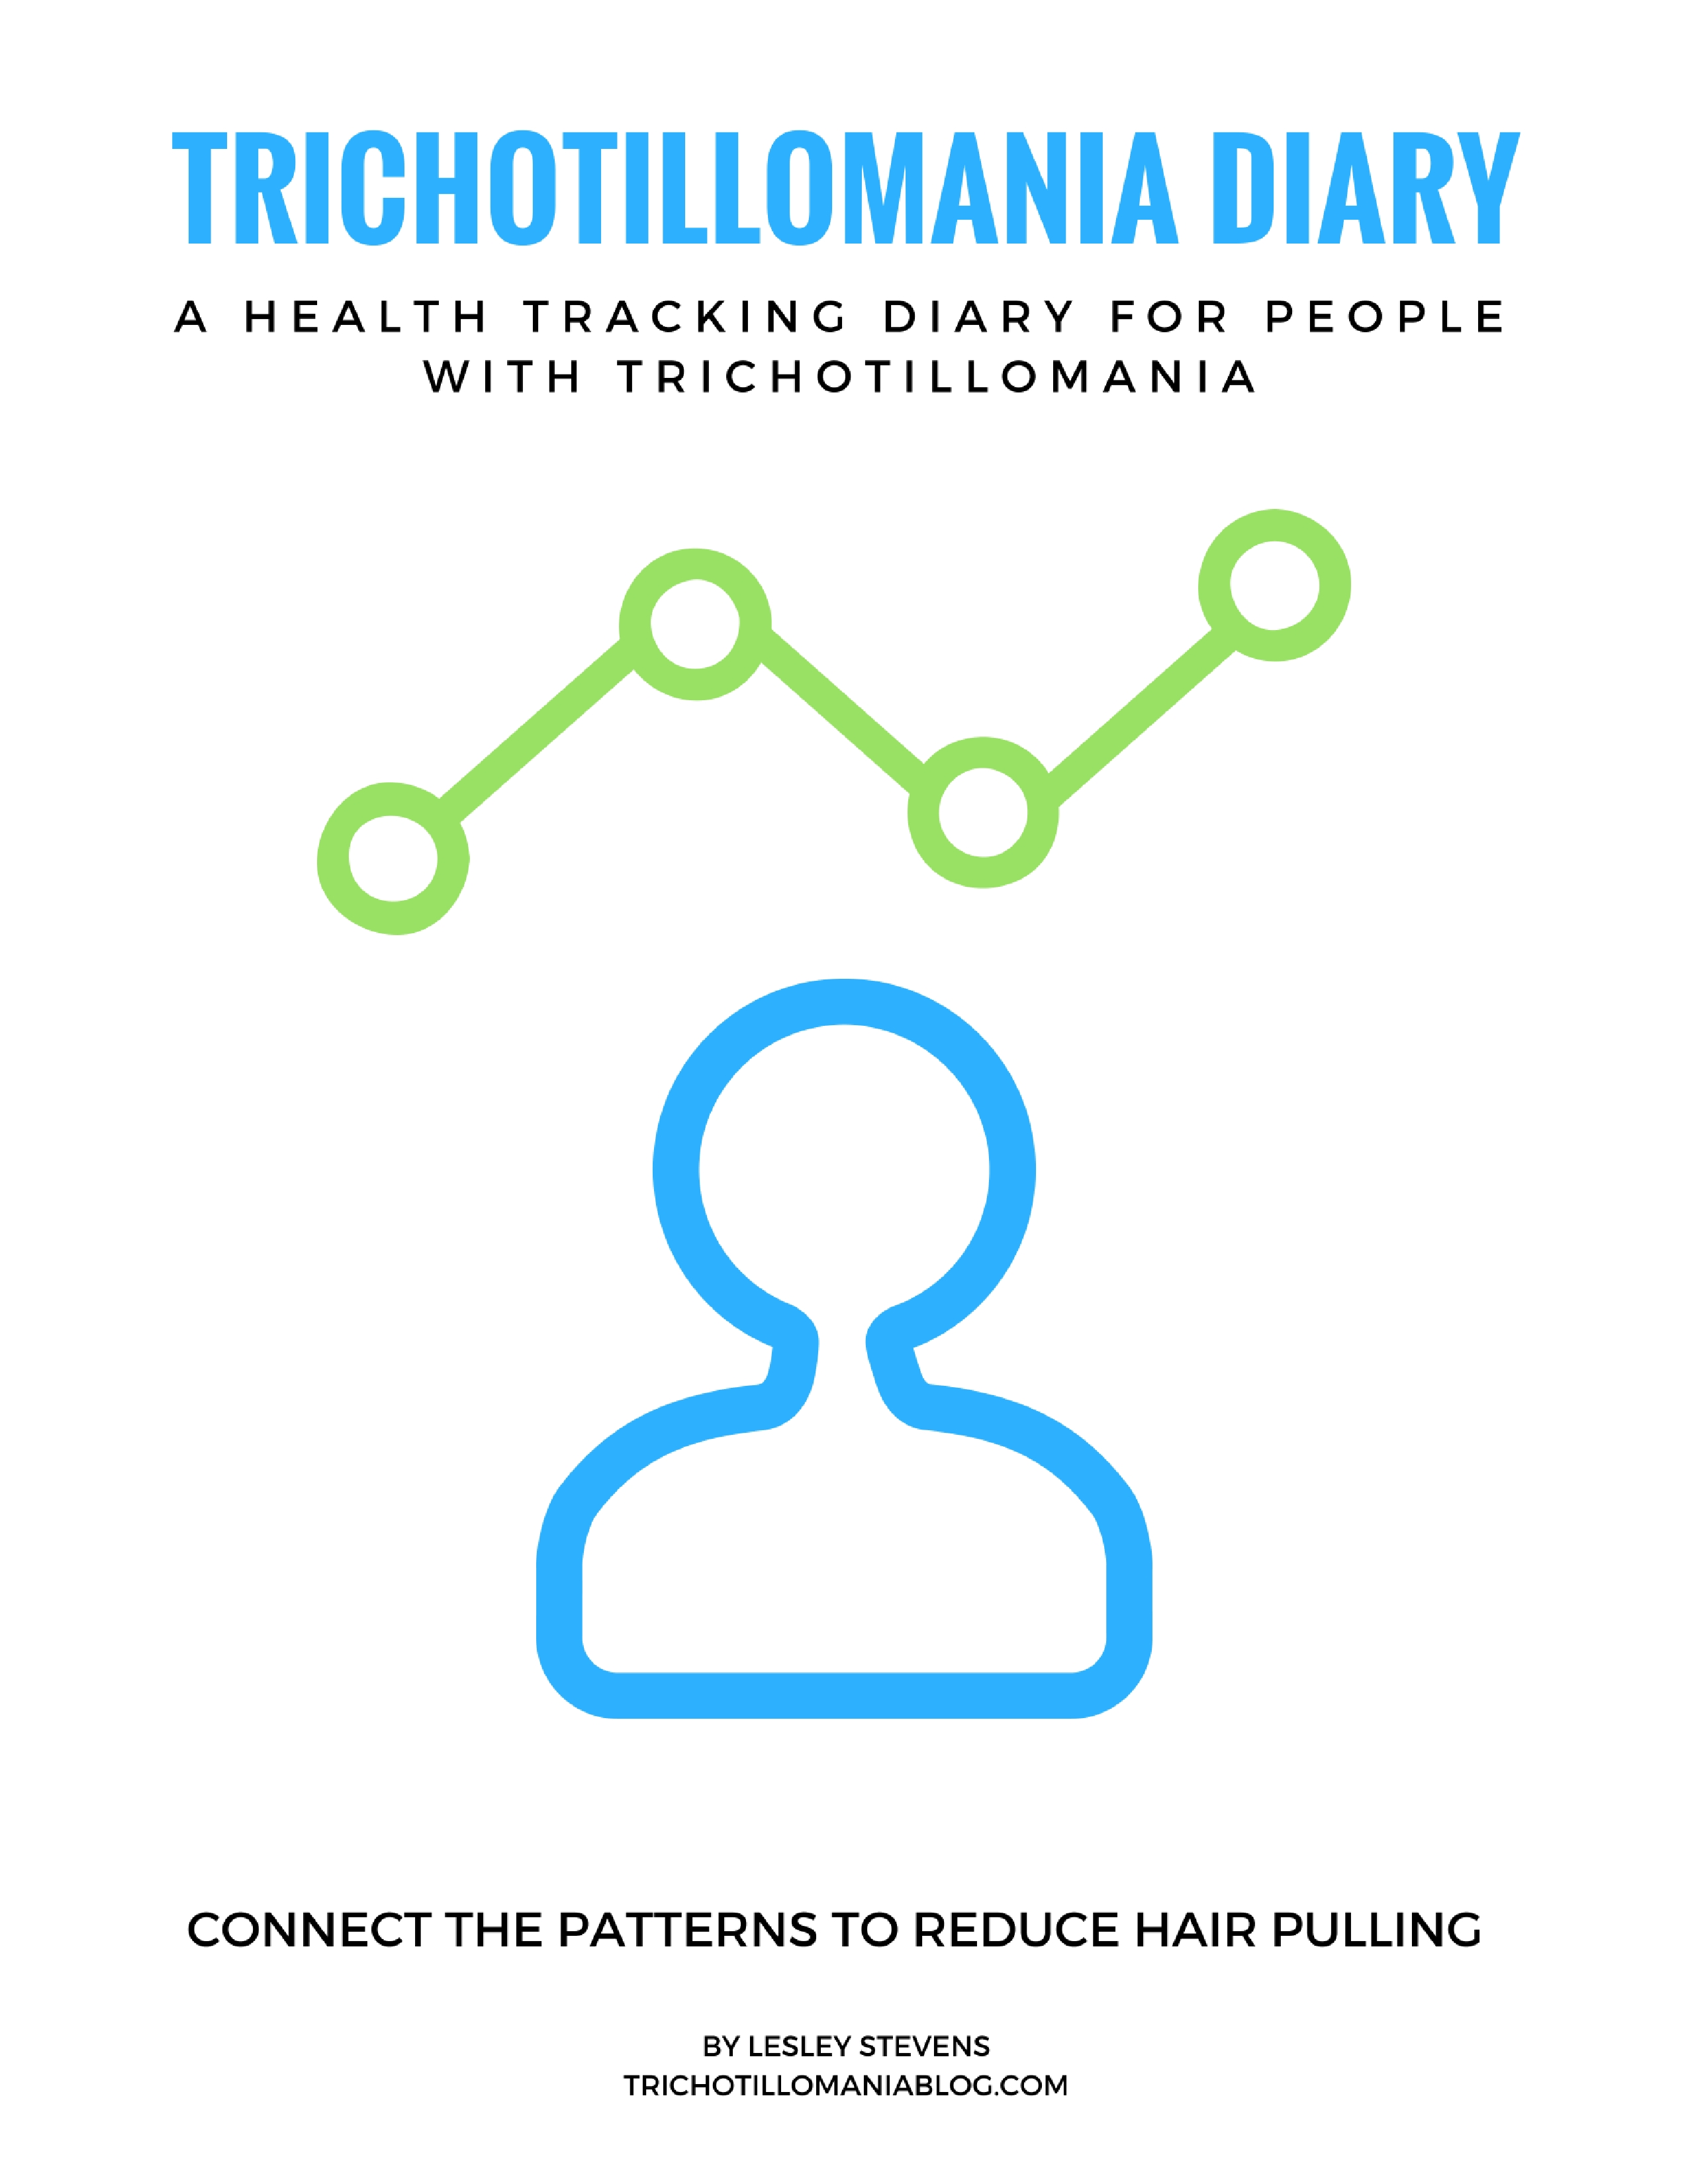 Trichotillomania Health Tracking Diary: A Health Tracking Diary for People with Trichotillomania - figure out what is causing your hair pulling disorder. This diary can help stop hair pulling because it shows you what to look for, what to change and keeps good records so you can track patterns.